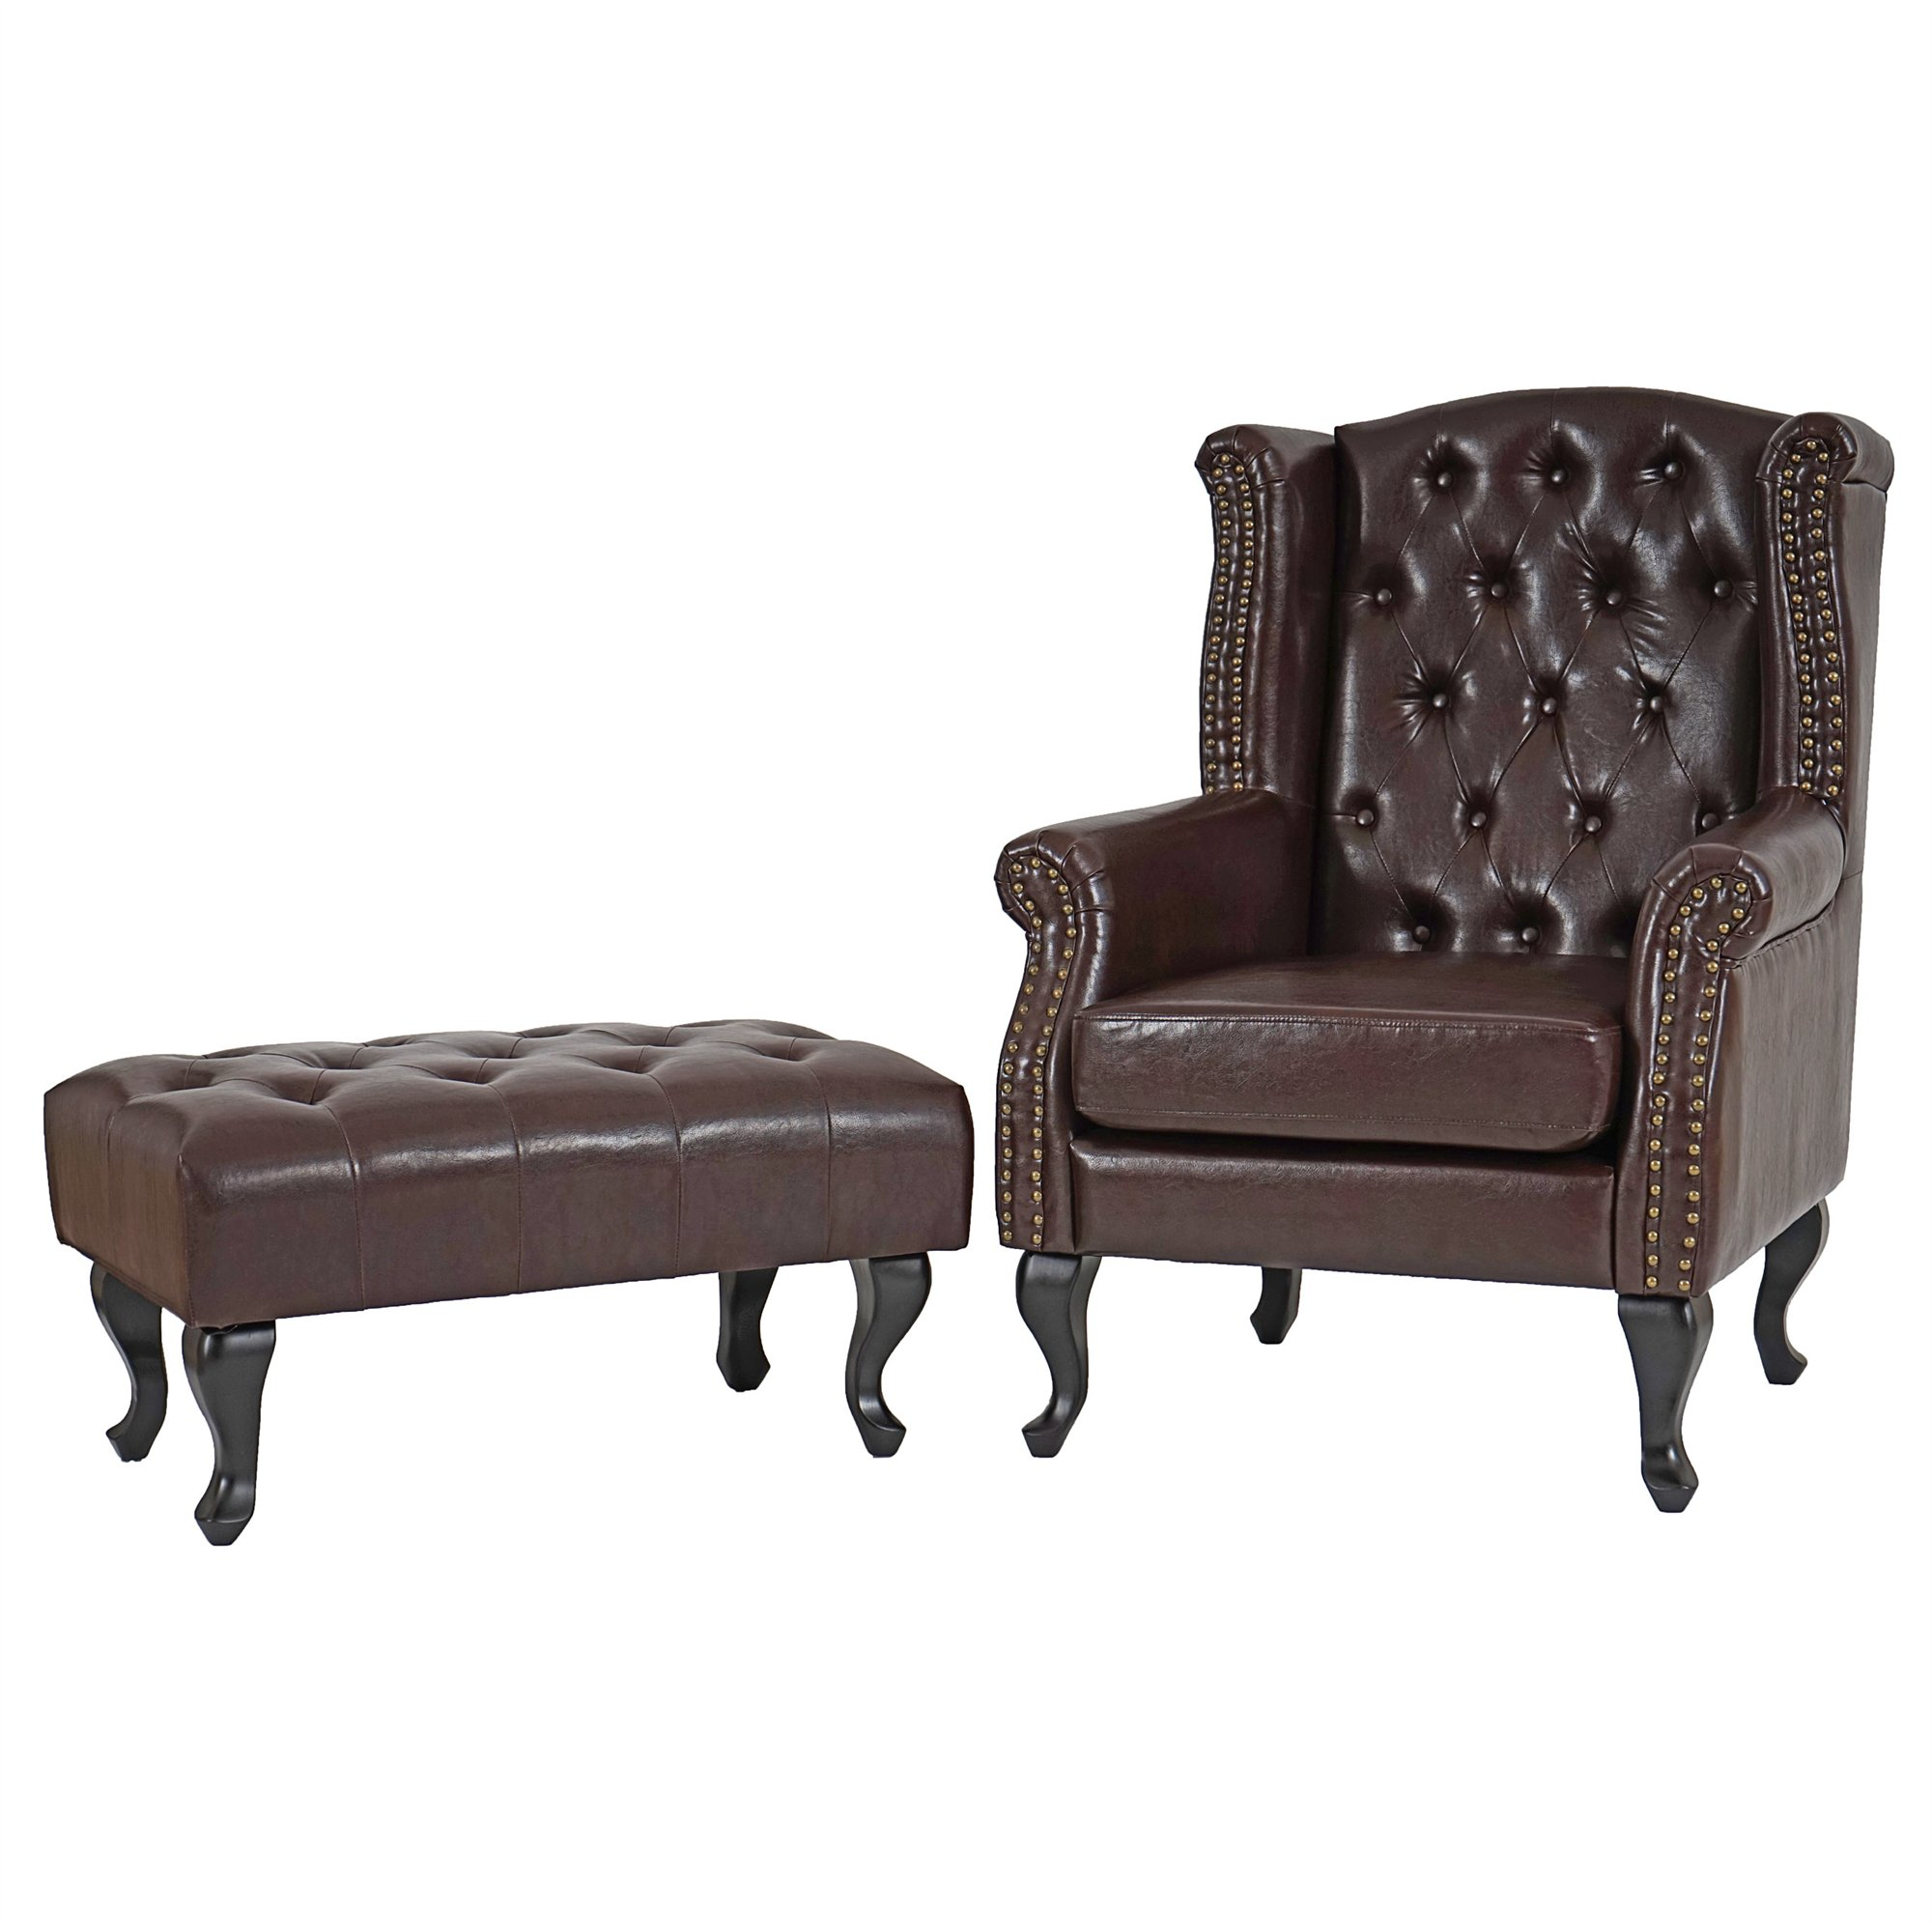 Sill n chesterfield chester en piel color marr n incluye for Sillon chesterfield cuero